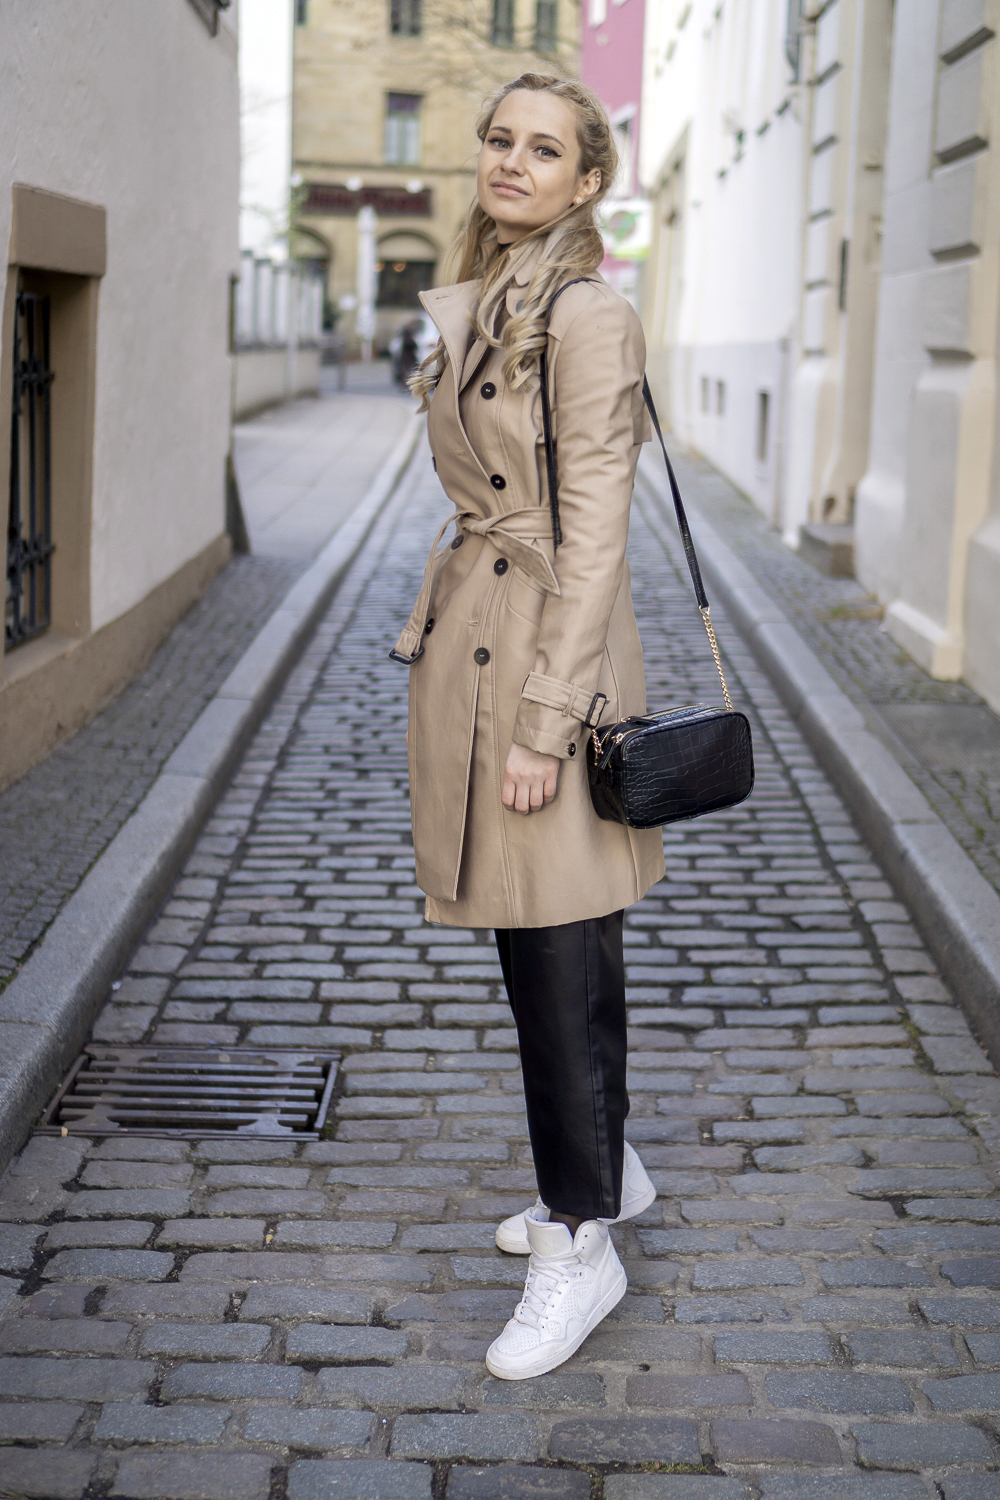 wearing beige trench coat from zara, white nike sneakers, mango shopper bag. OOTD outfit look